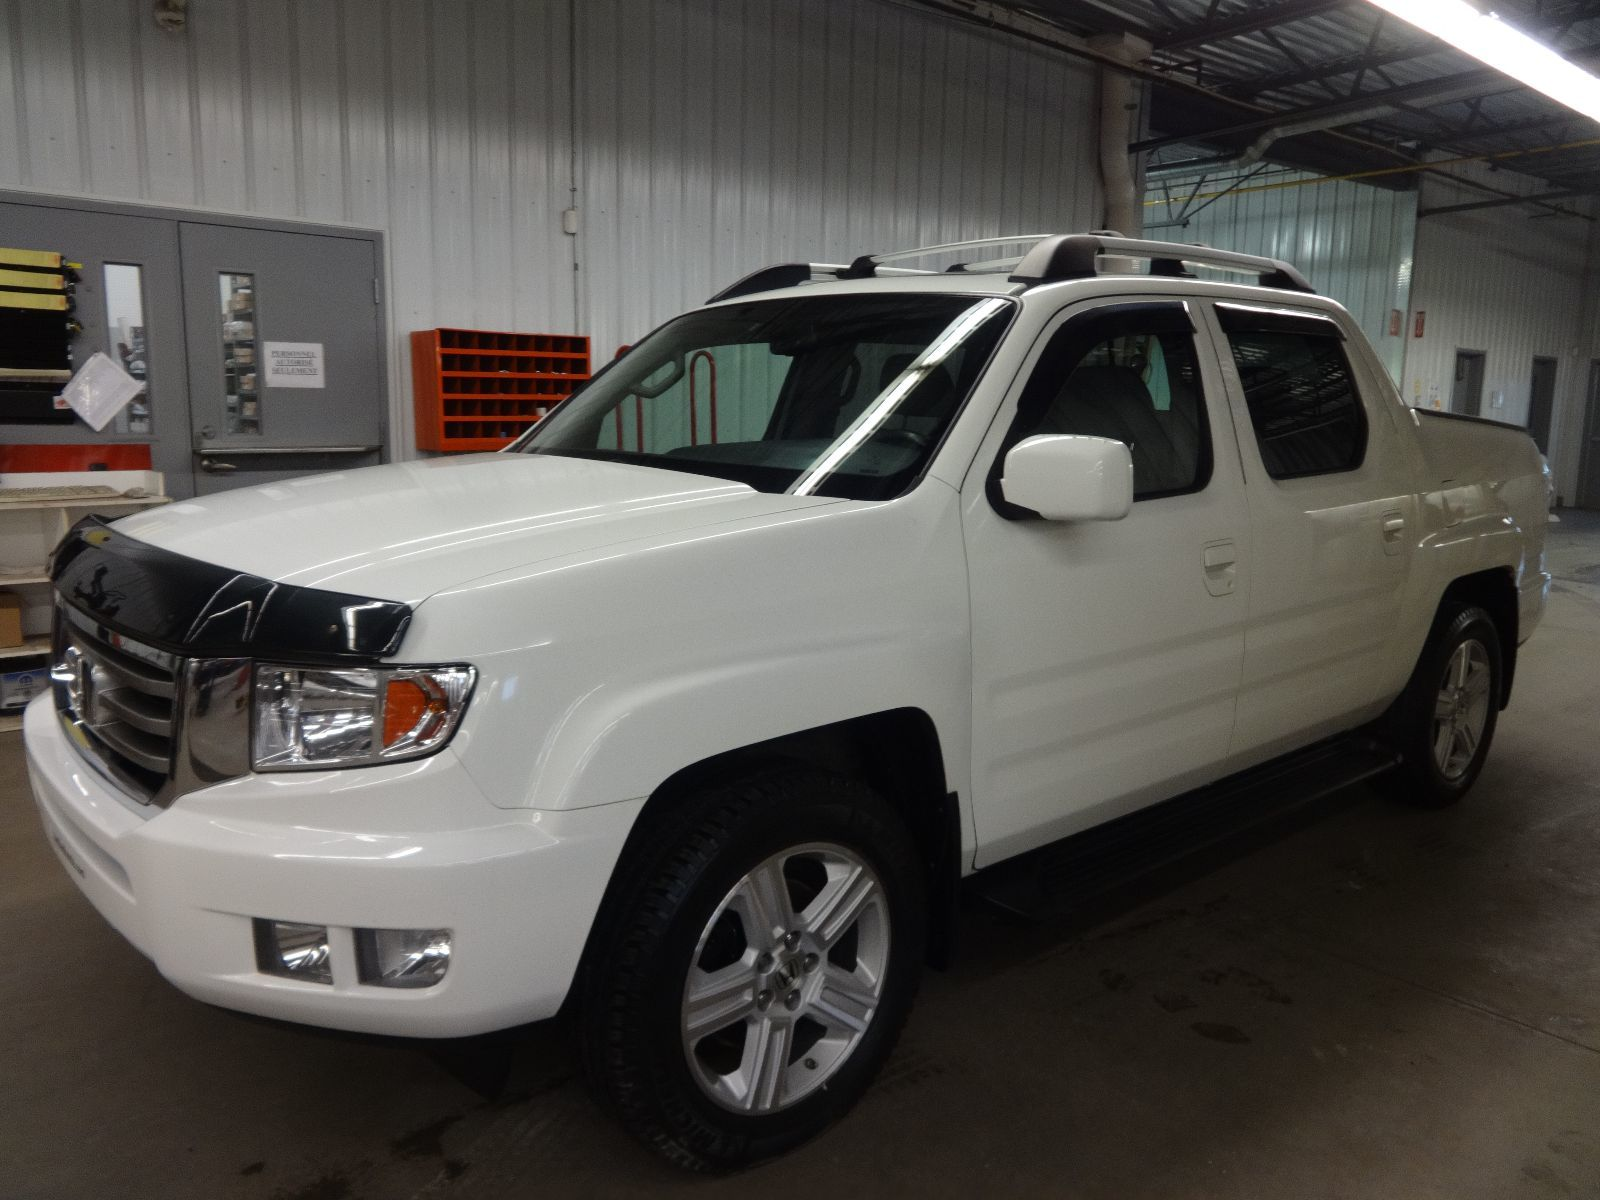 Used 2013 Honda Ridgeline Touring 4wd Cuir Navi Impeccable In Boat Towing With Thetford Mines Inventory Quebec